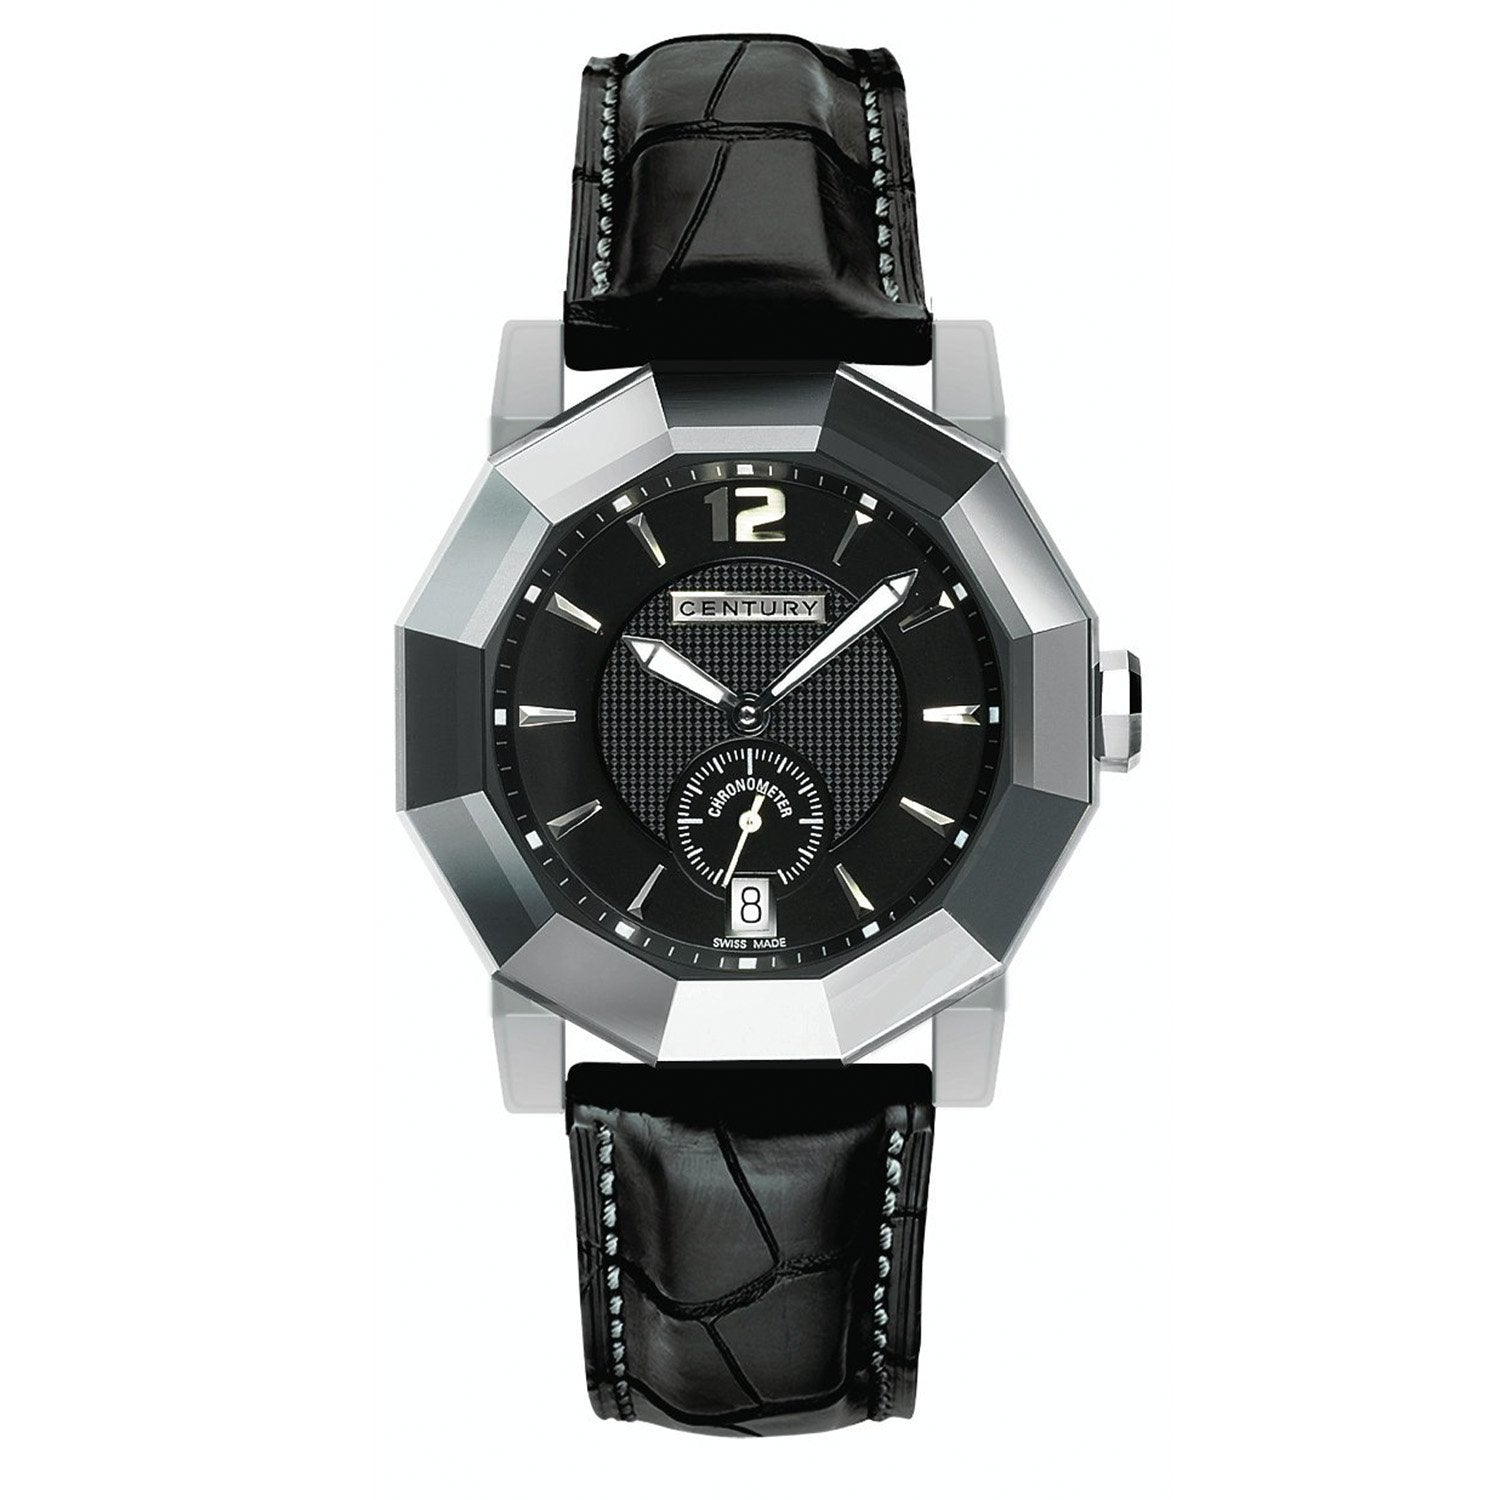 Century Sapphire Prime Time Ego COSC Chronometre Black - Watches & Crystals